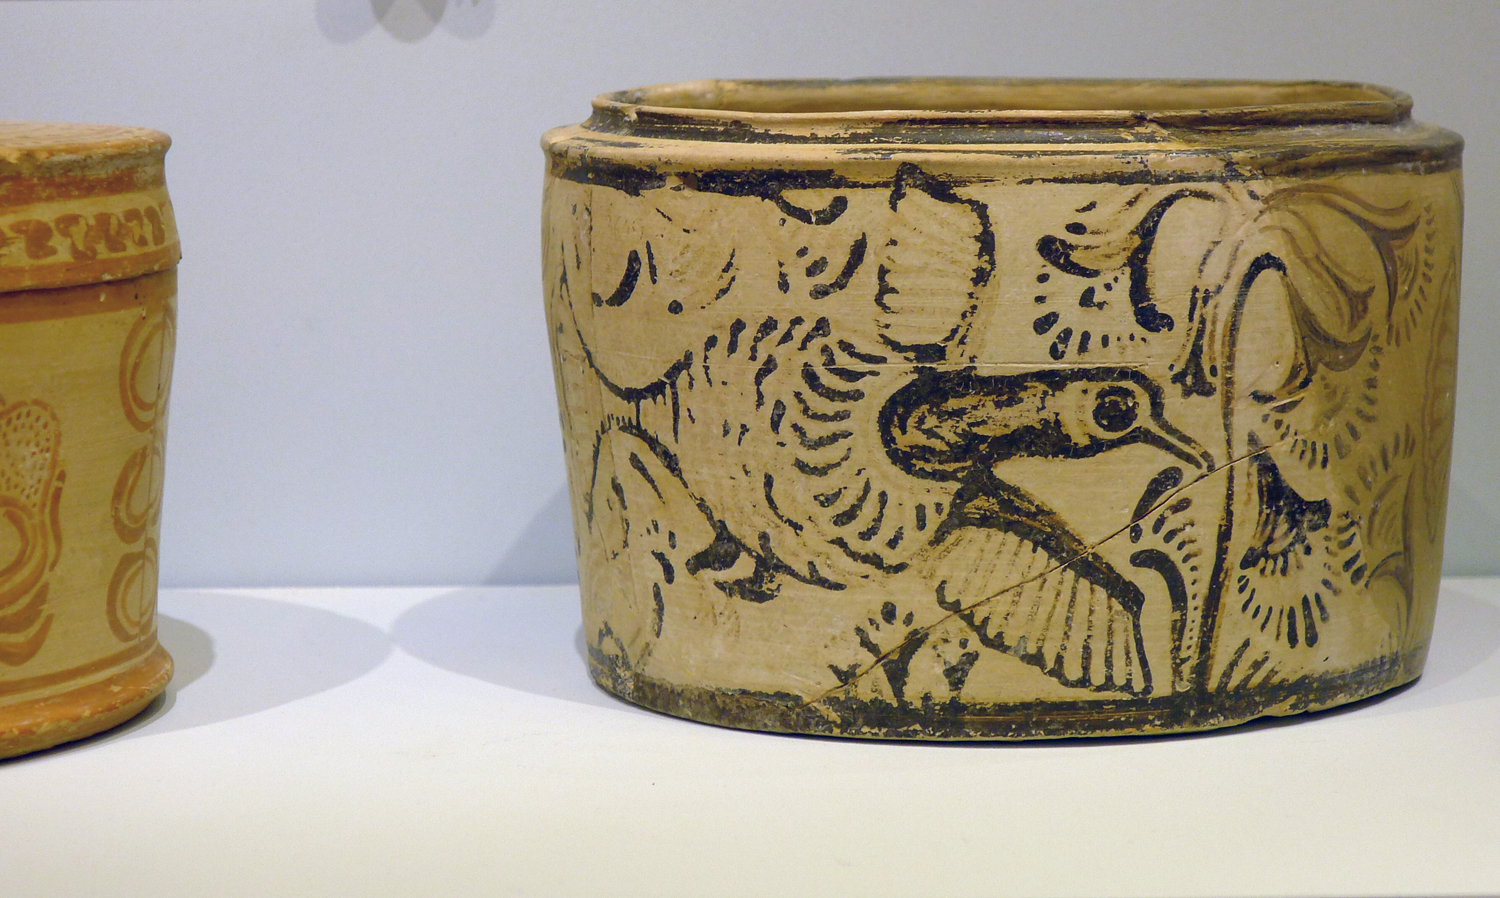 Pottery bowl from about 2000 BC with a painted bird